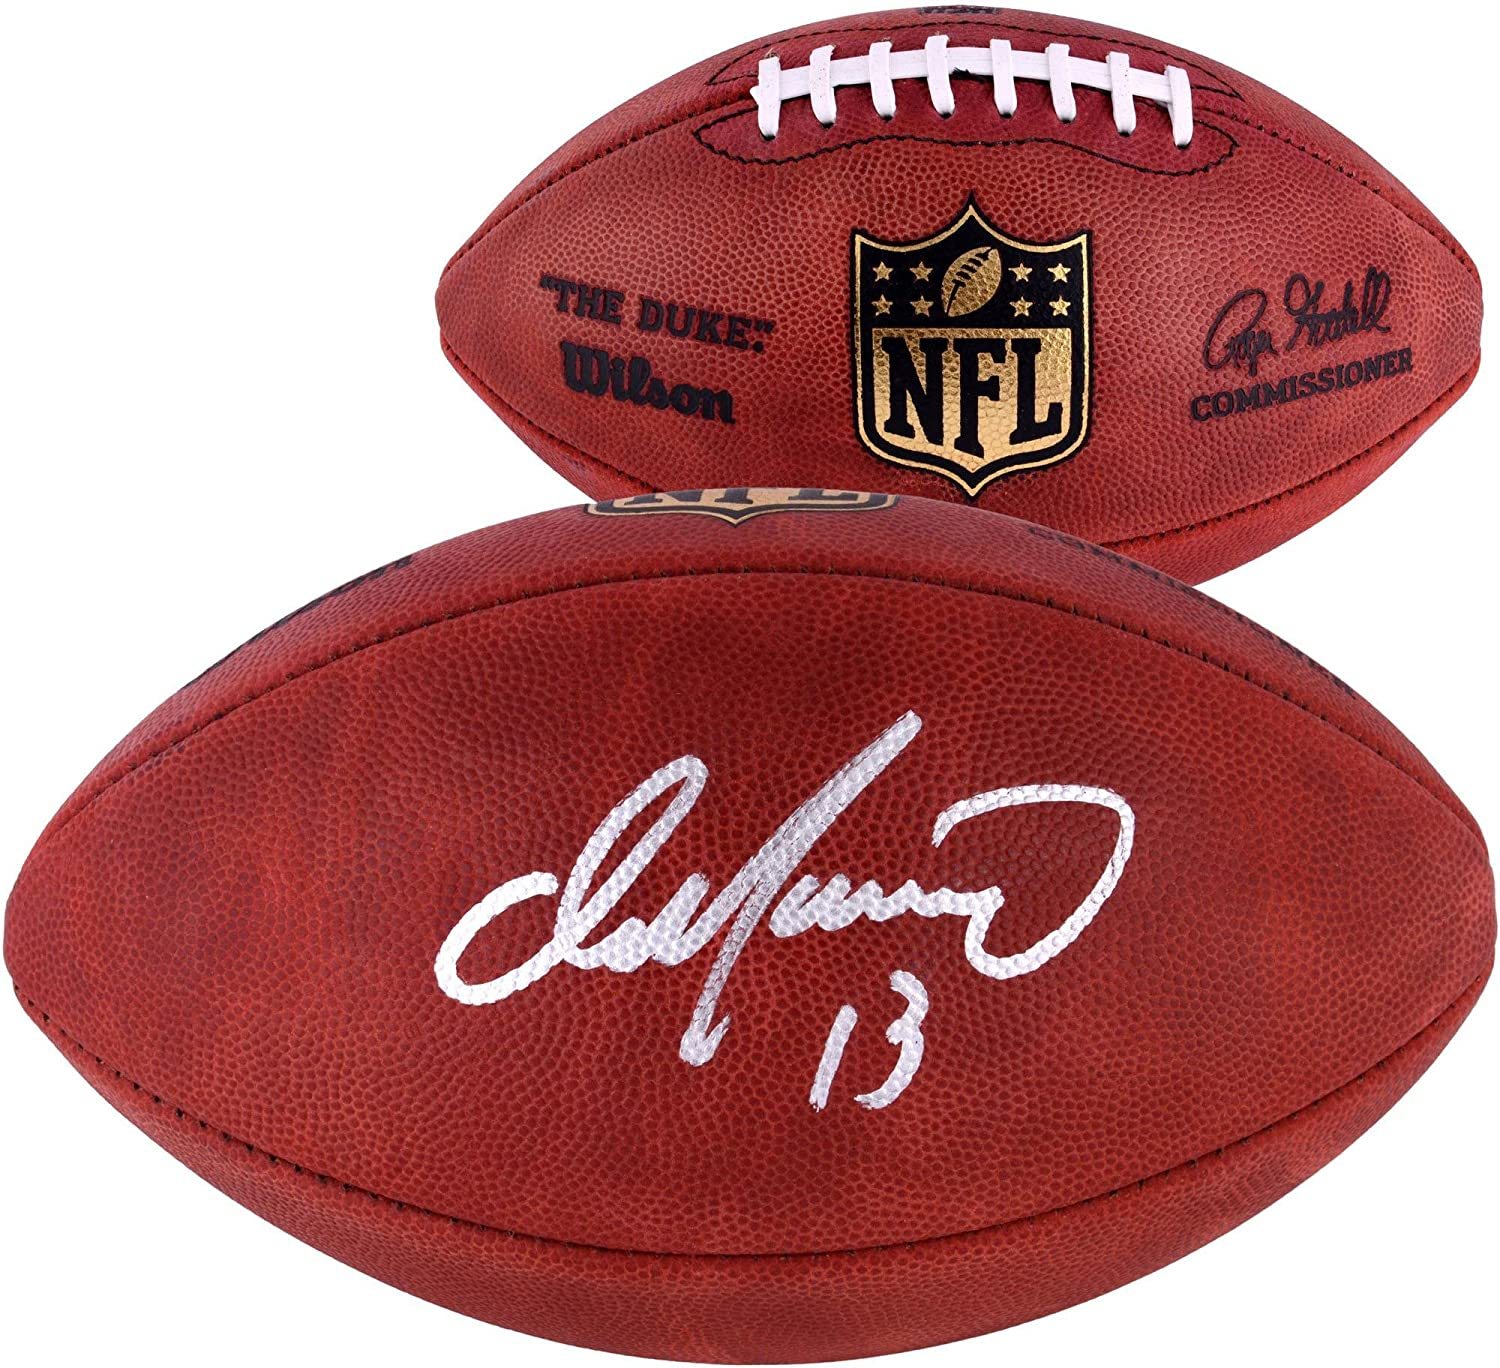 Dan Marino Miami Dolphins Autographed Duke Pro Football - Fanatics Authentic Certified - Autographed Footballs